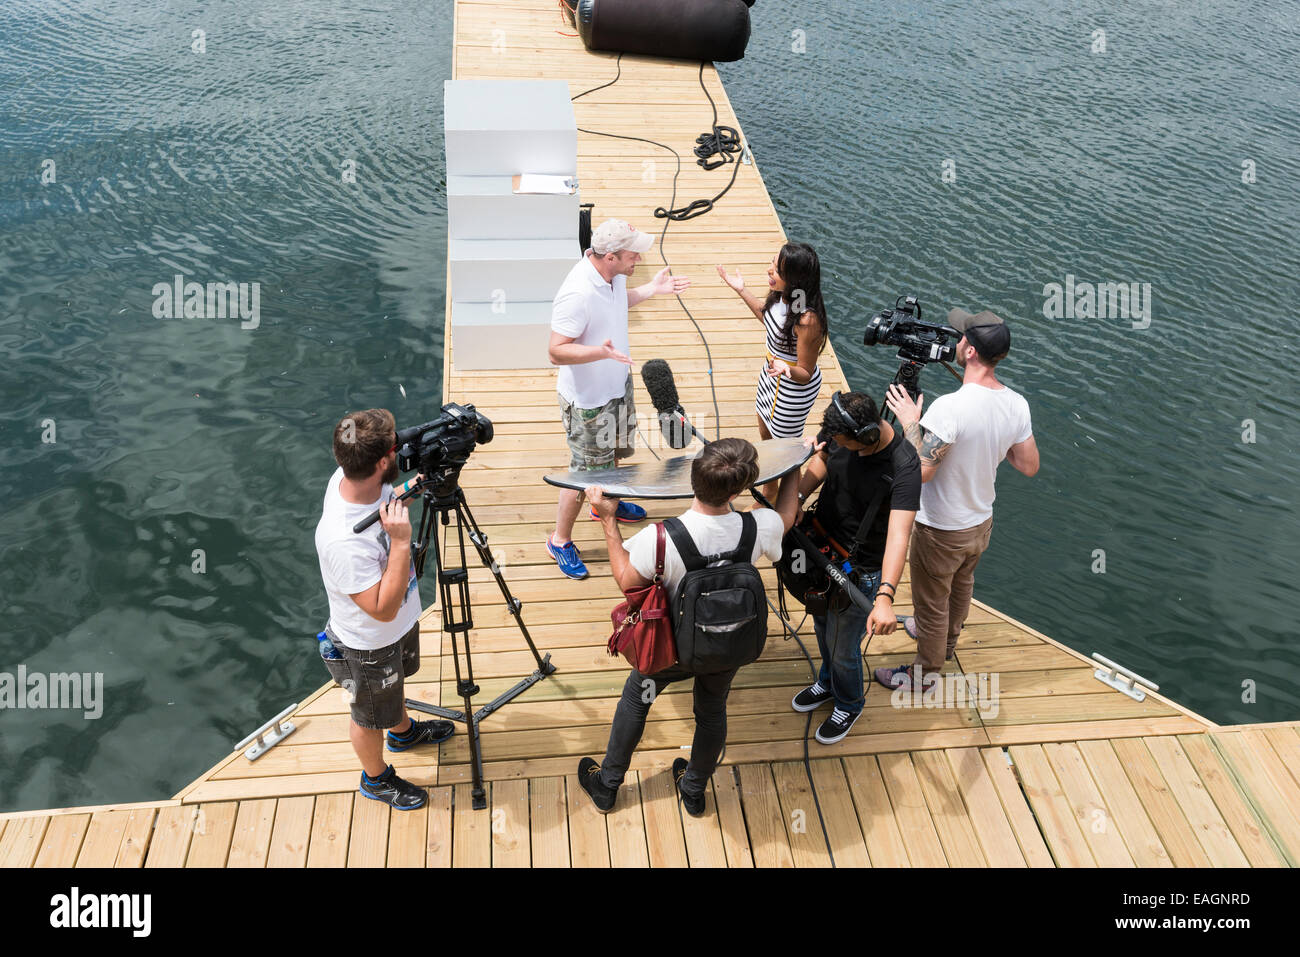 Crew member interviewed and filmed, Volvo Ocean Race 2014-2015, Cape Town, South Africa - Stock Image